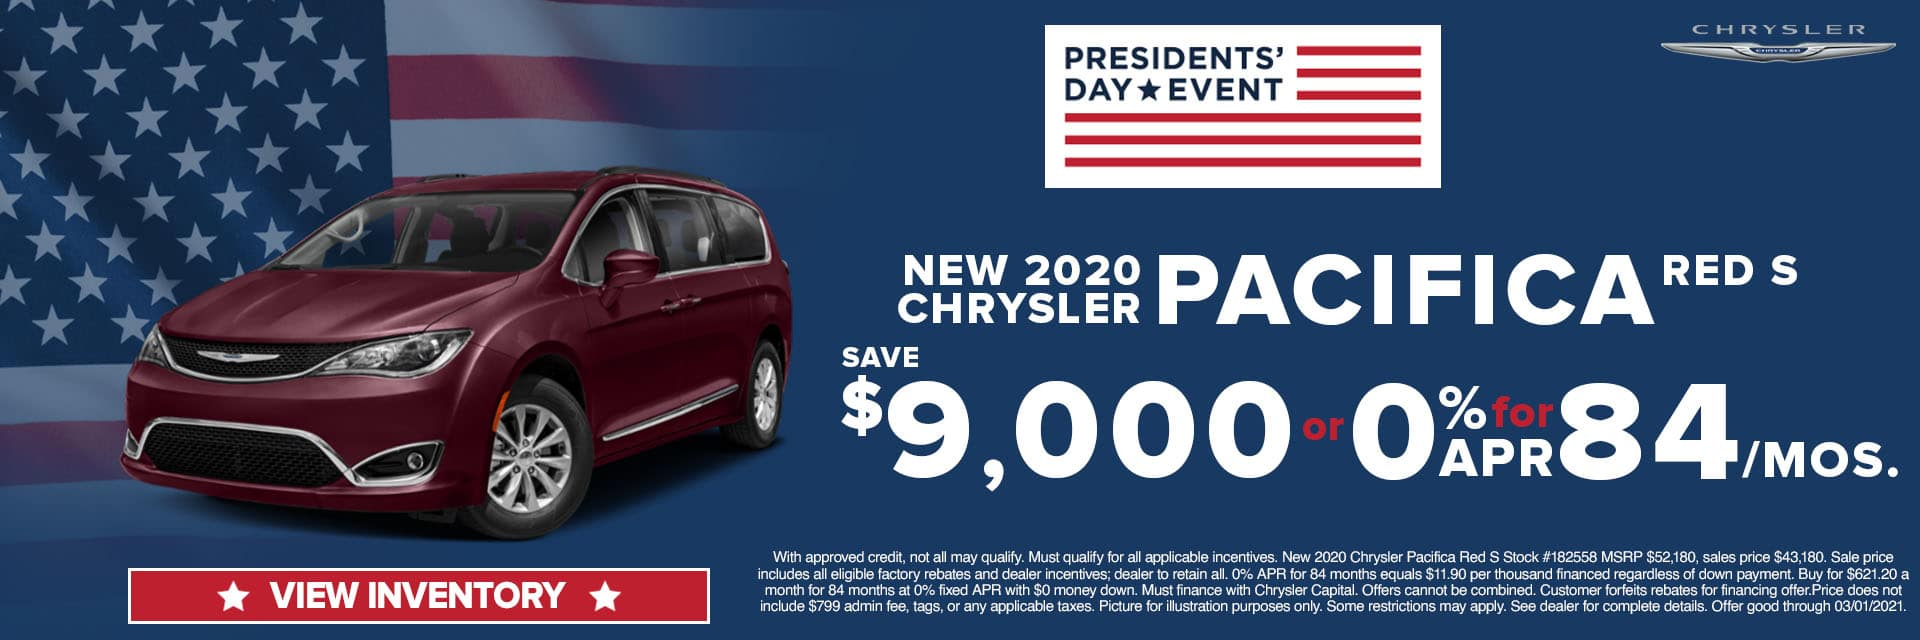 CLCP-February 2021-2020 Chrysler Pacifica